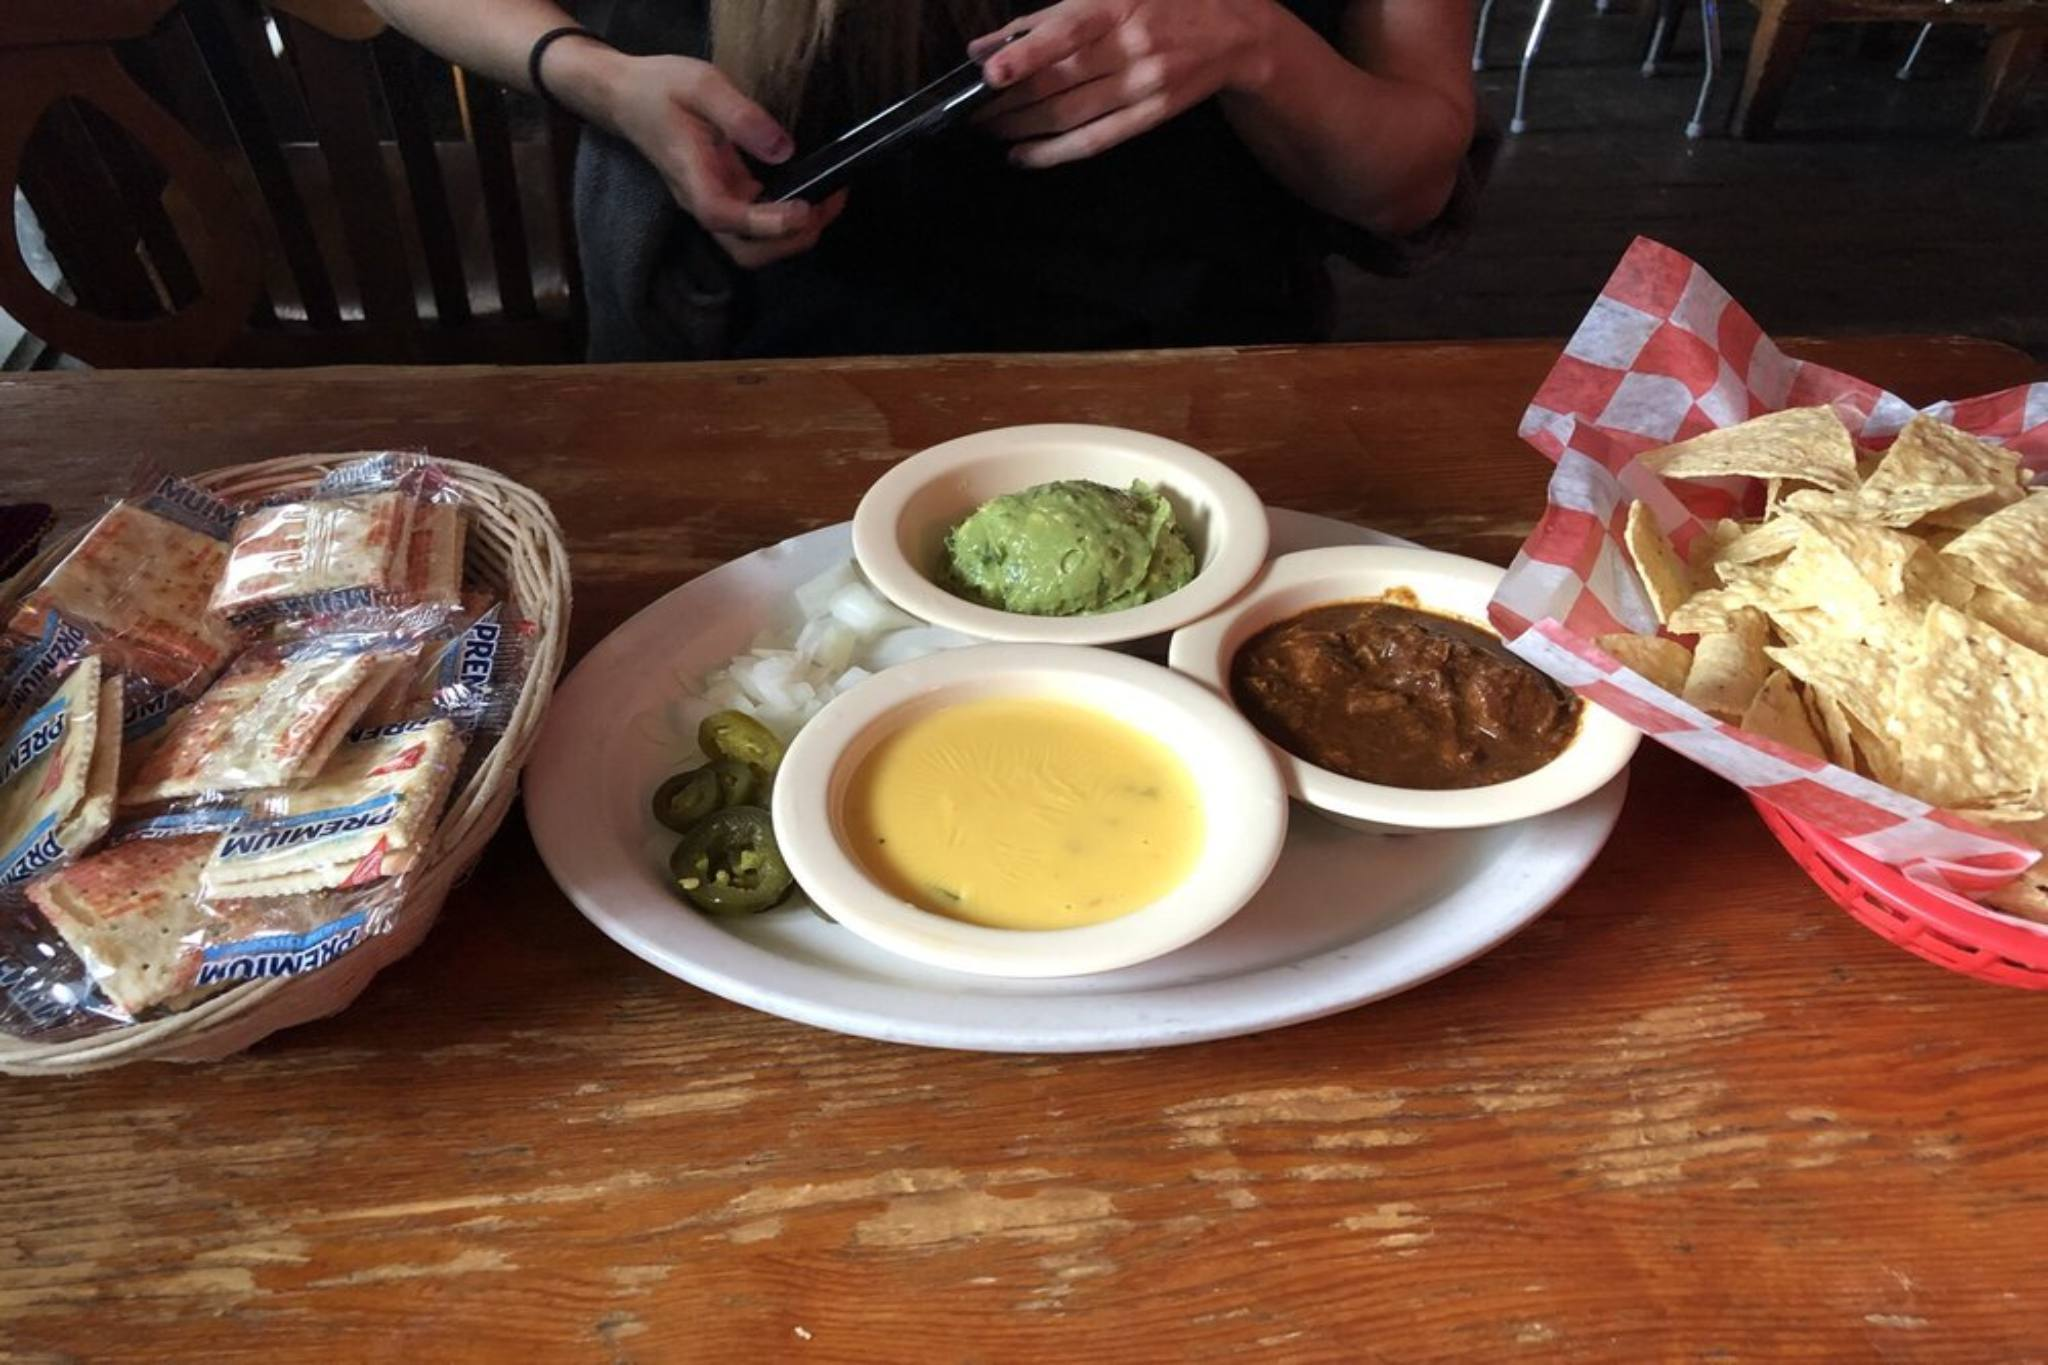 Texas Chili Parlor queso